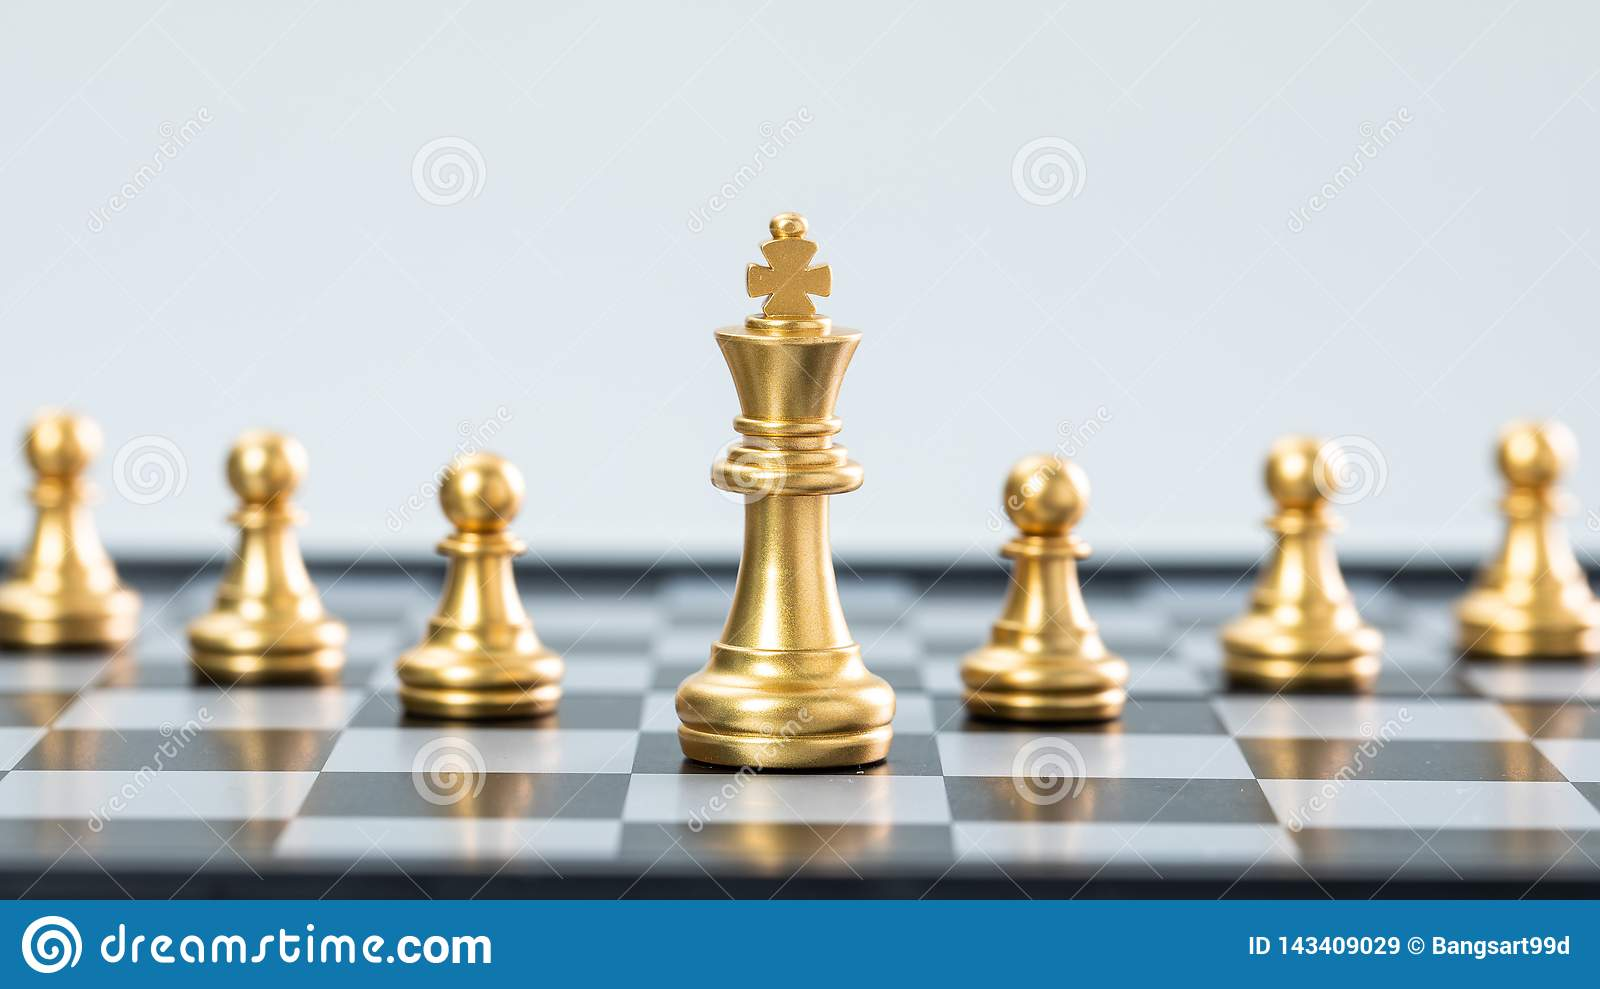 Gold and silver chess